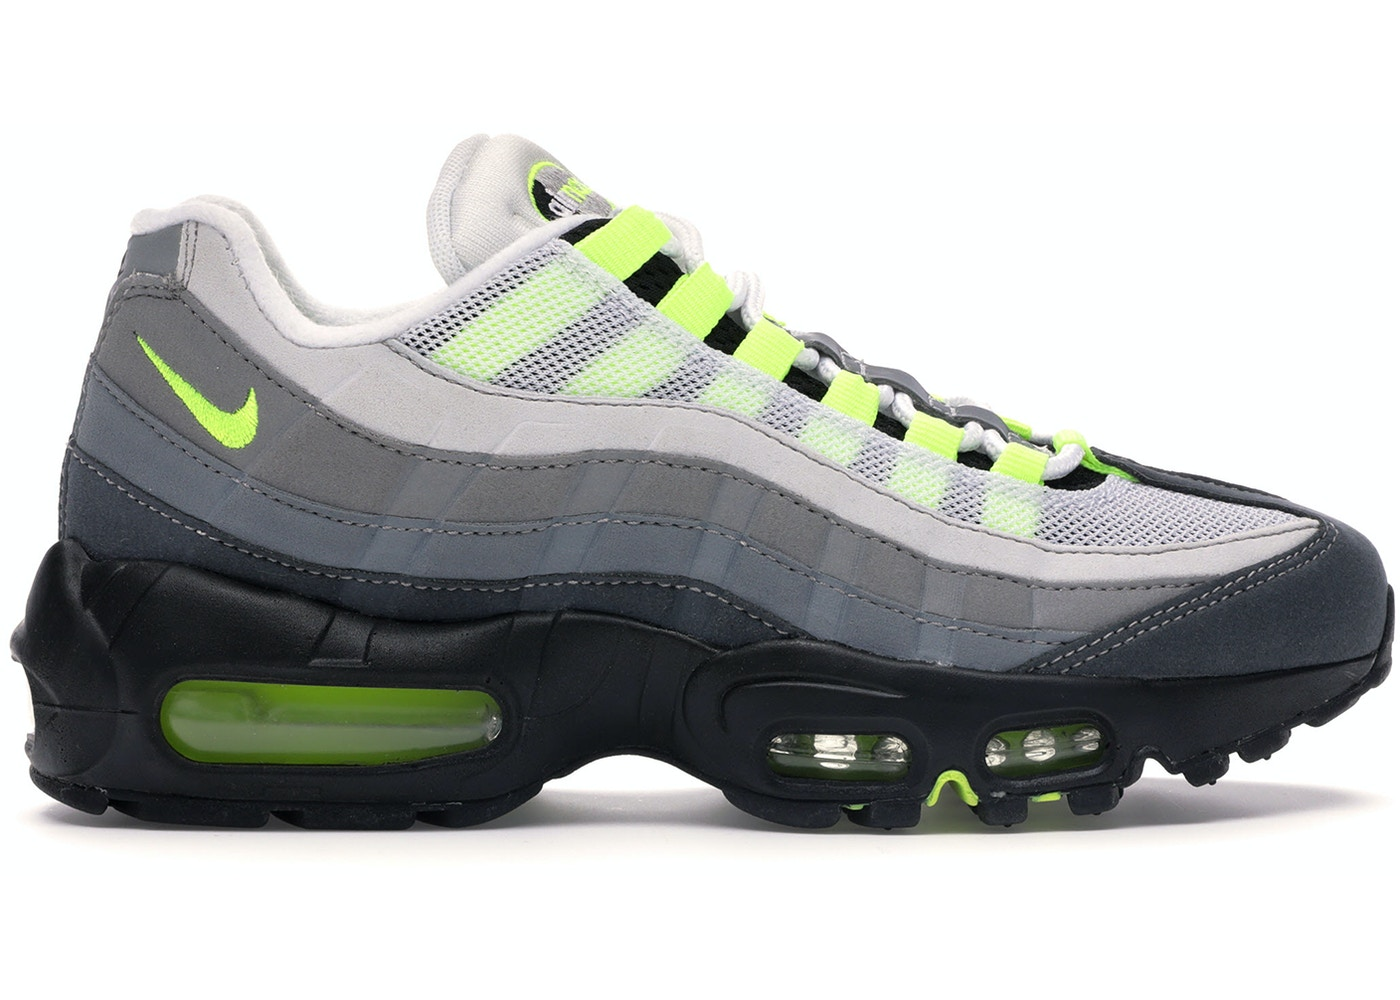 timeless design 53f55 2afdd Air Max 95 OG Neon 2015 (W) - 307960-002